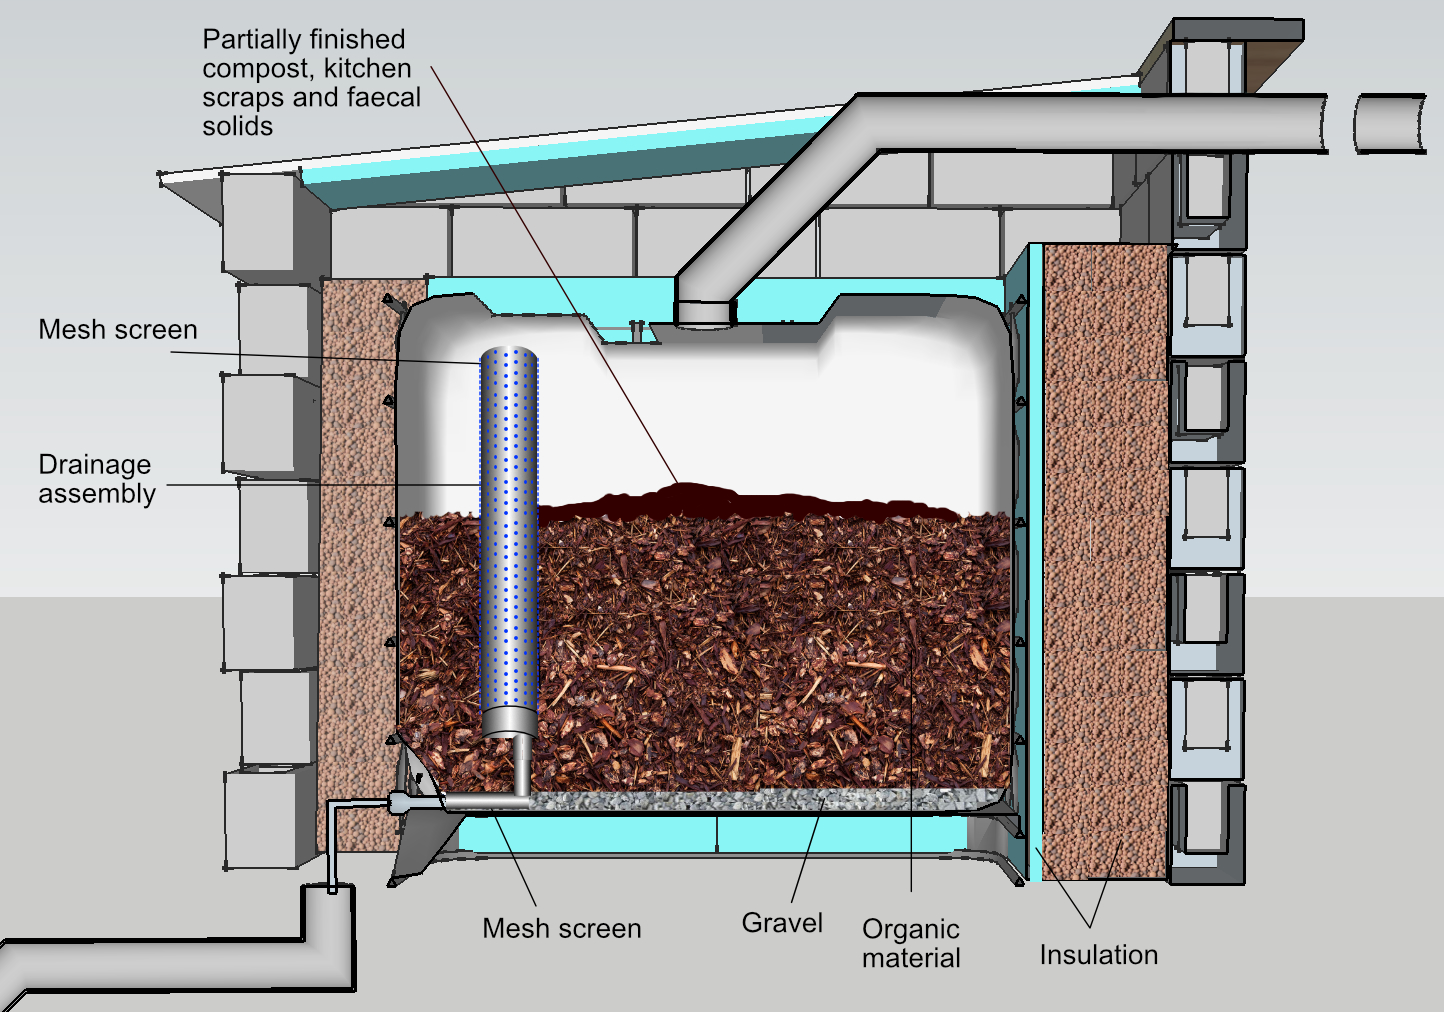 Section through vermicomposting toilet worm tank